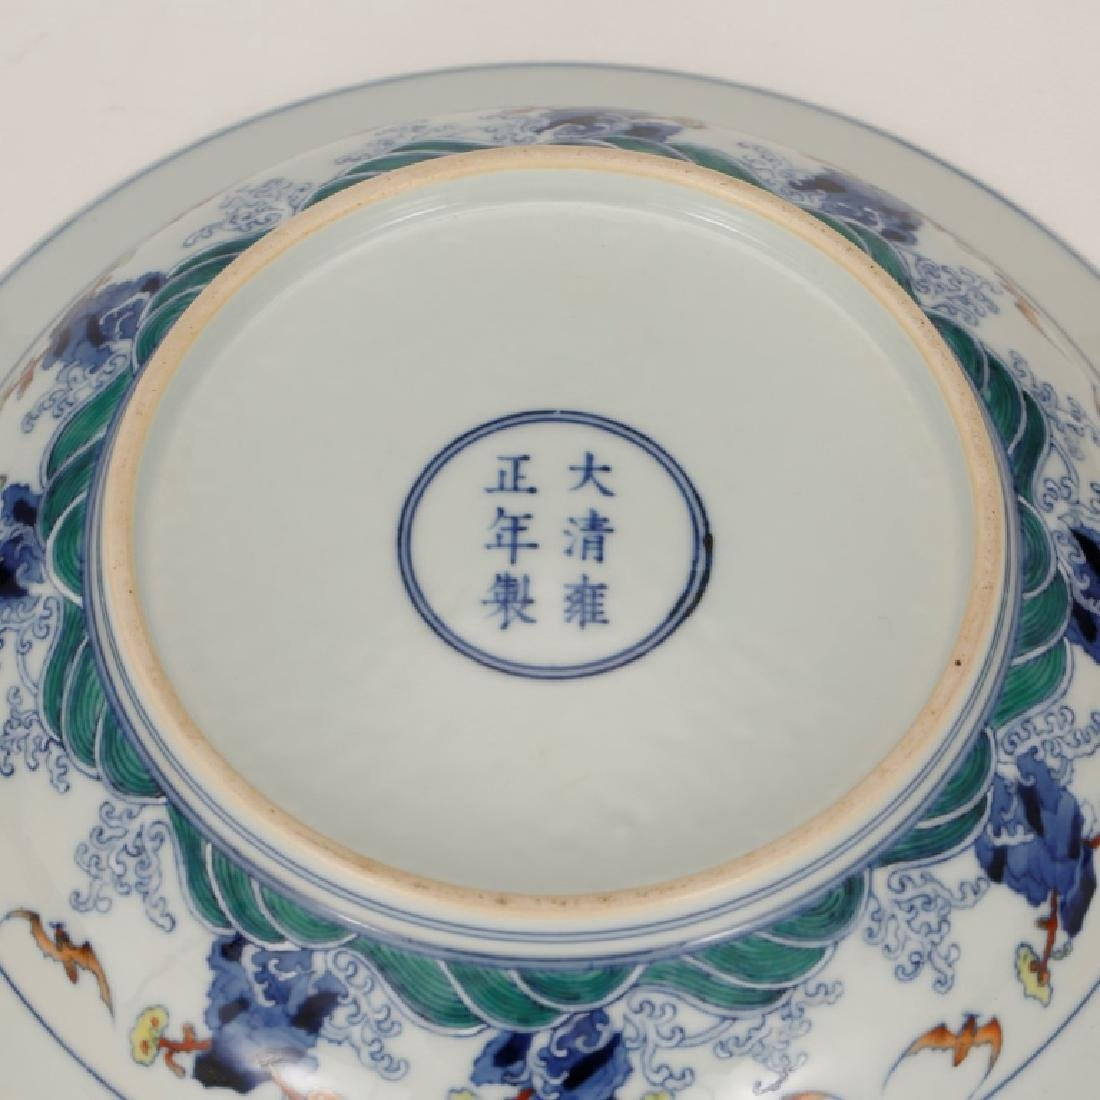 Chinese Qing Dynasty Wucai Porcelain plate - 6